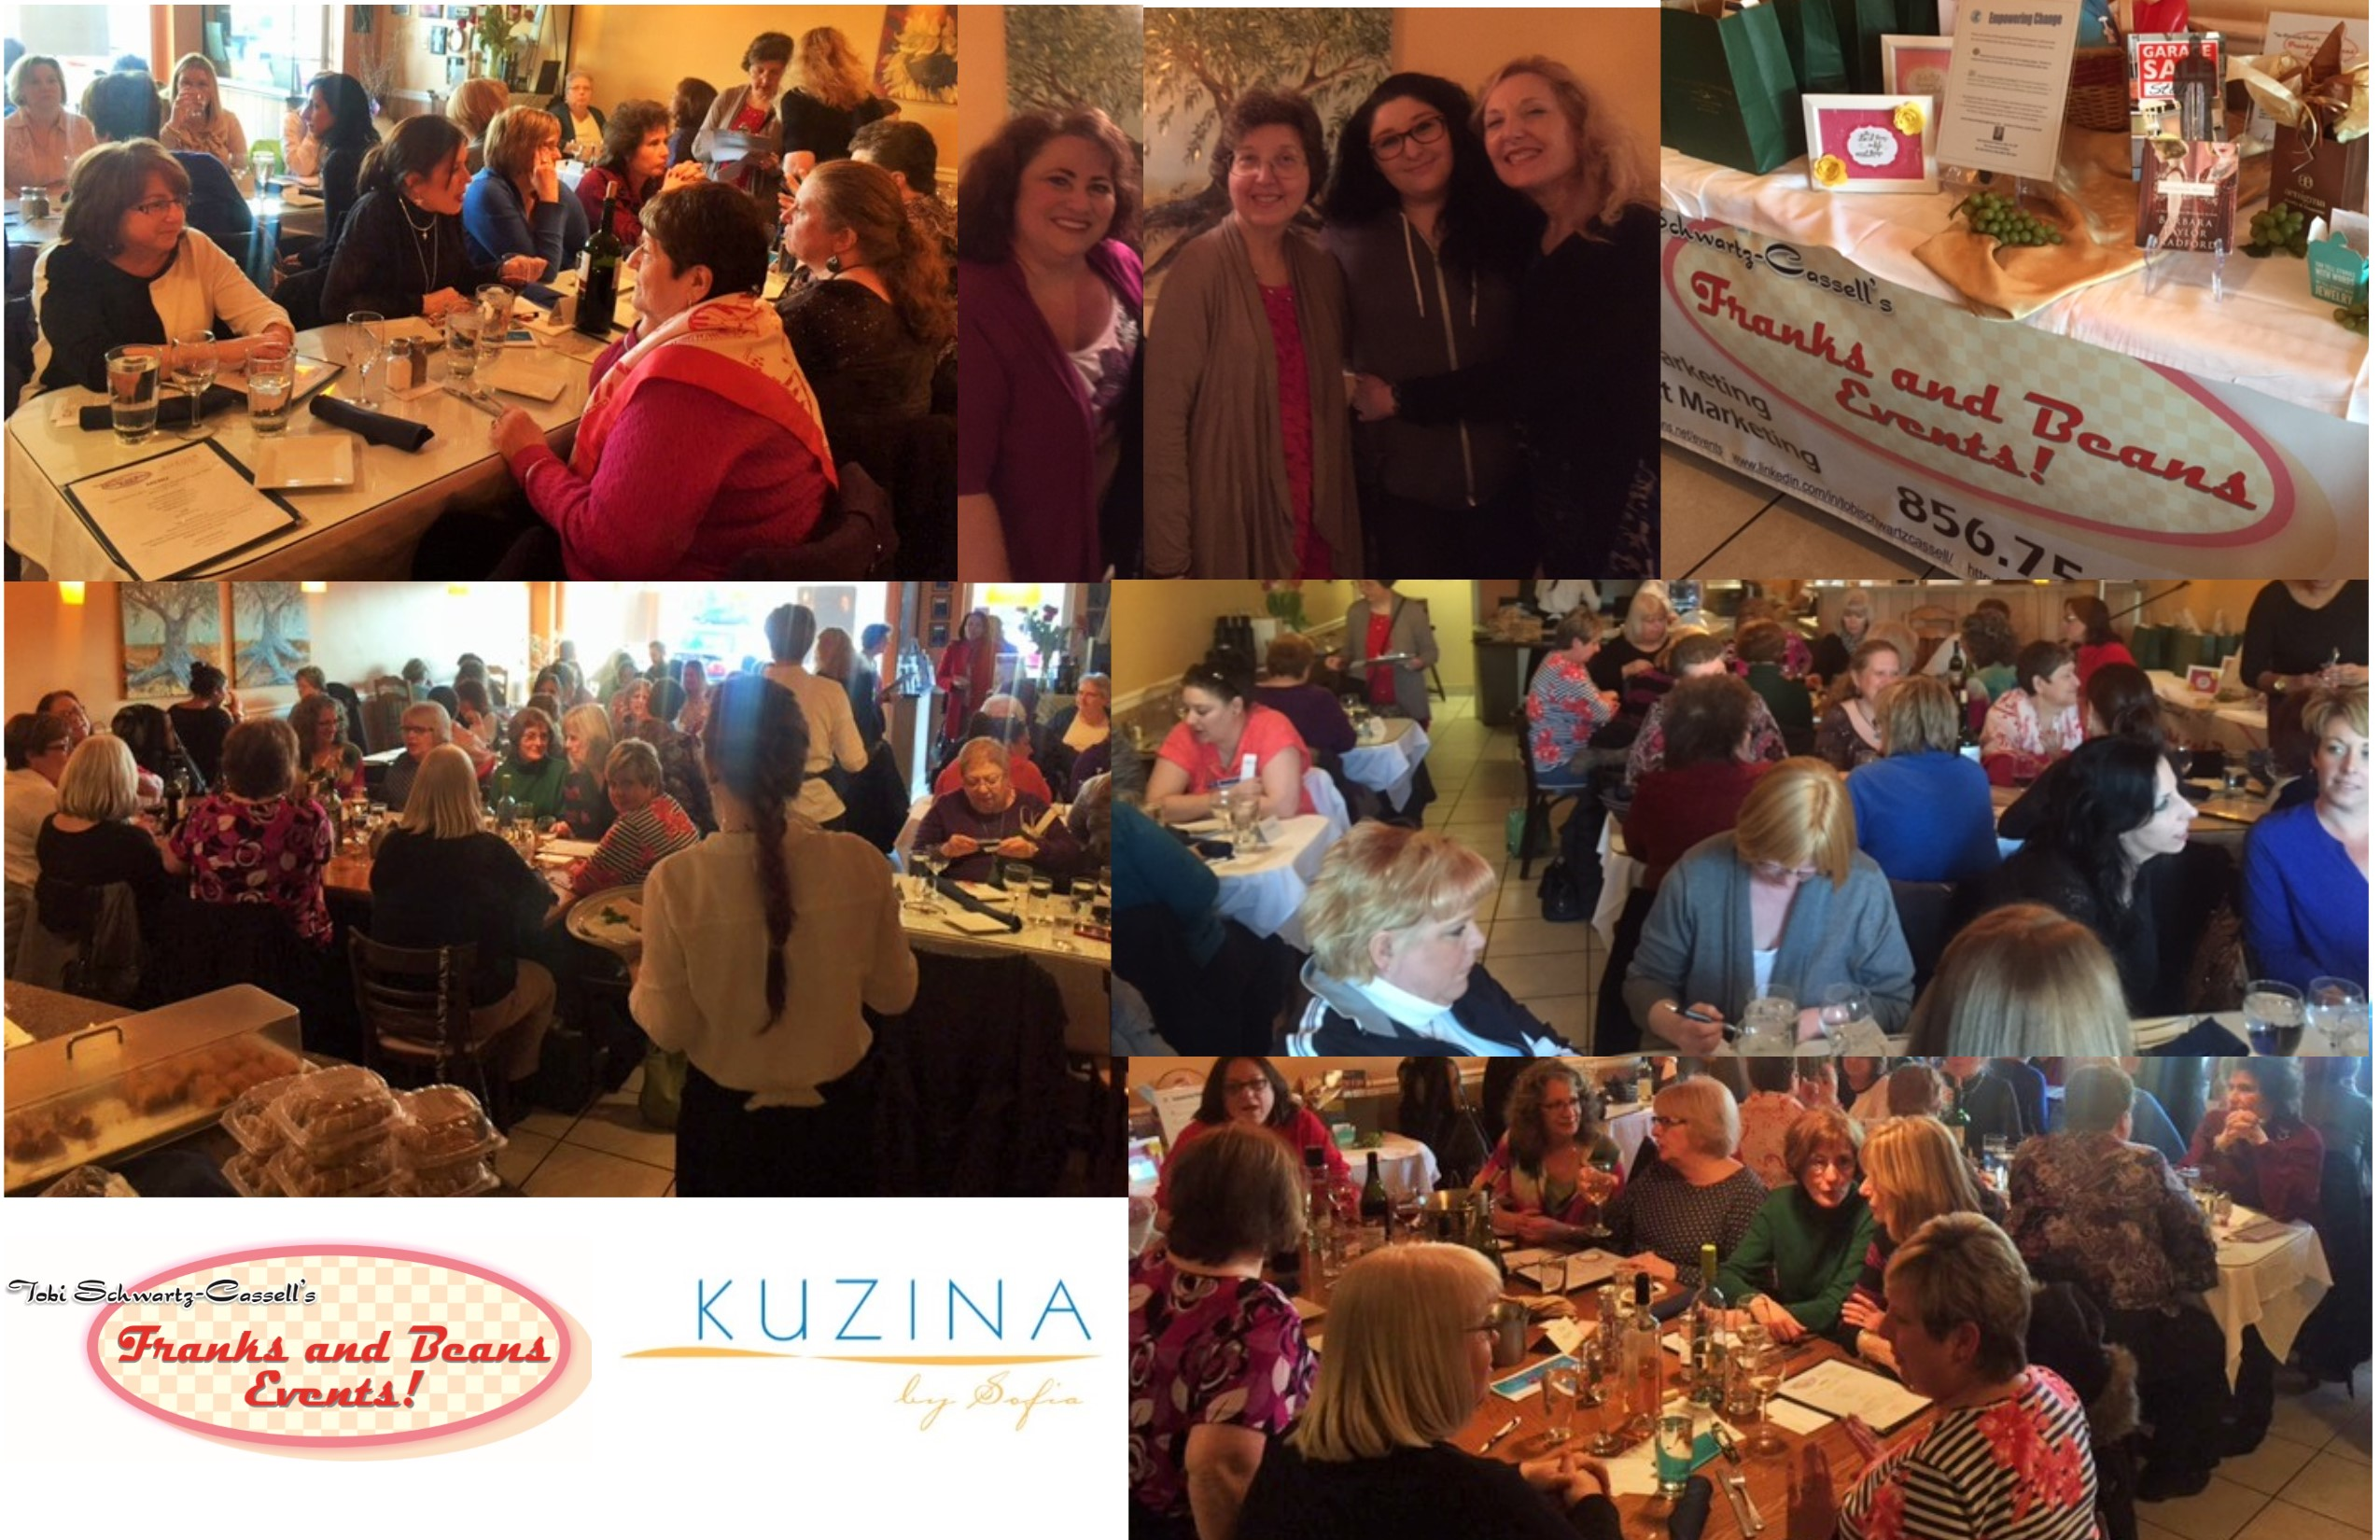 Another Psychic Dinner featuring the delicious dishes by Kuzina by Sofia.